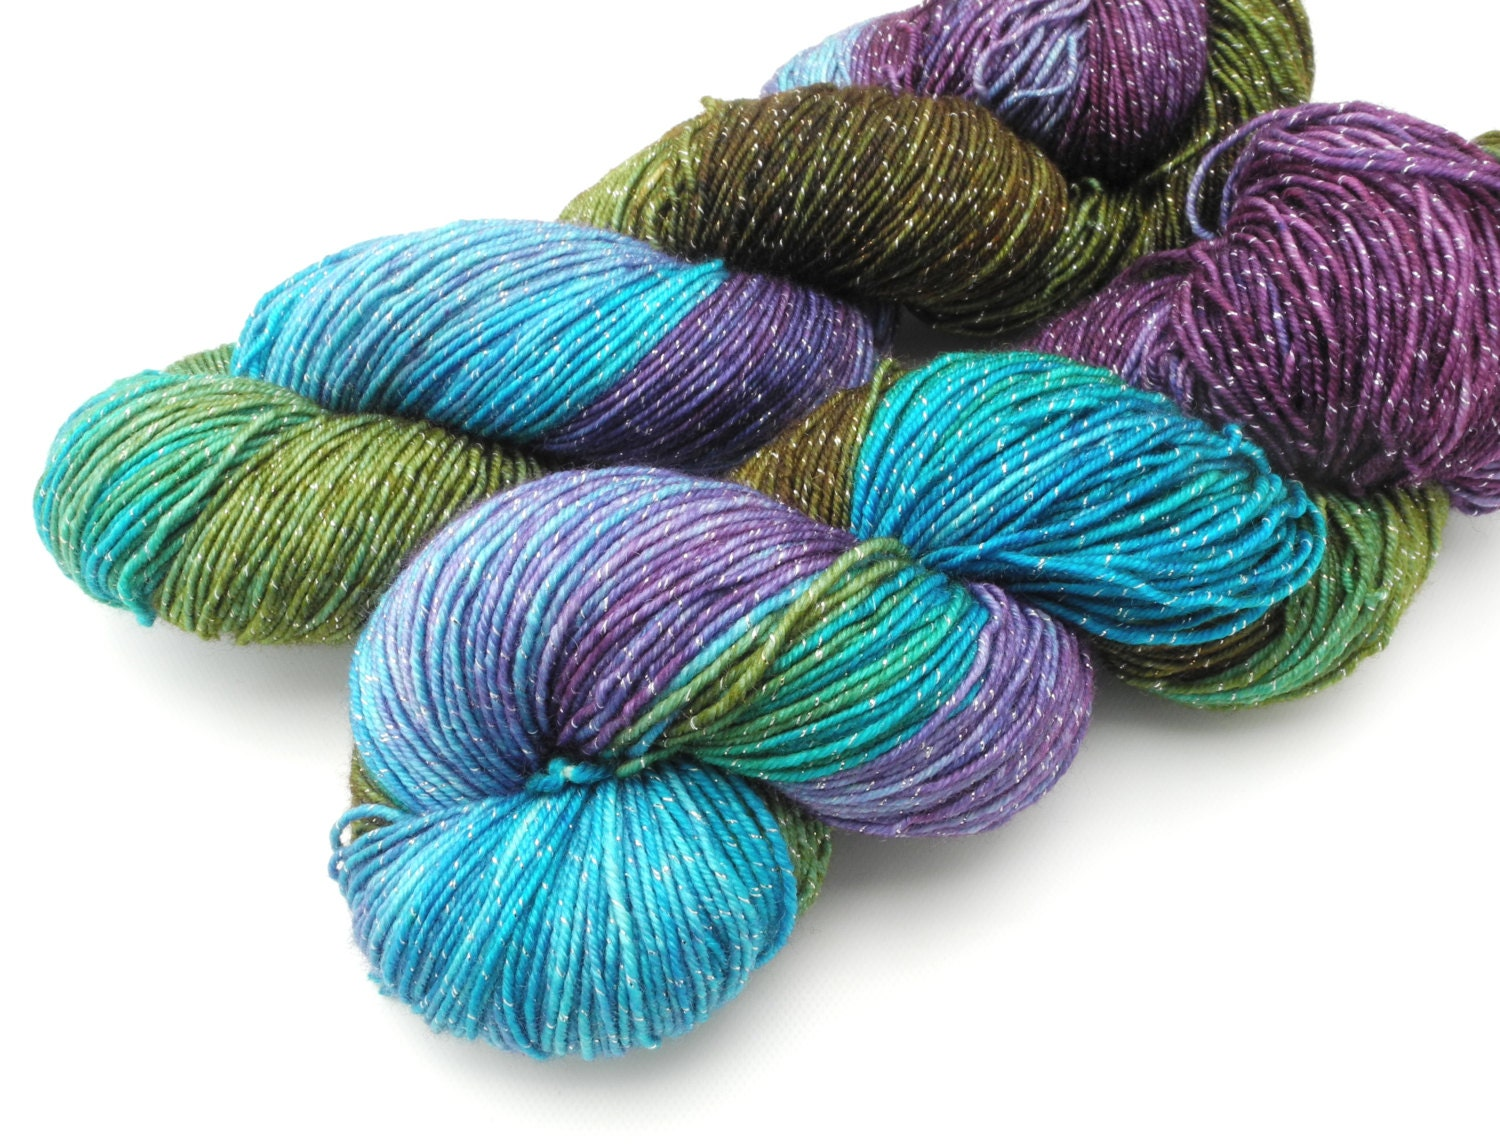 Variegated Yarn : Katatomic Variegated Hand Dyed Yarn Dyed to by DyeabolicalYarns